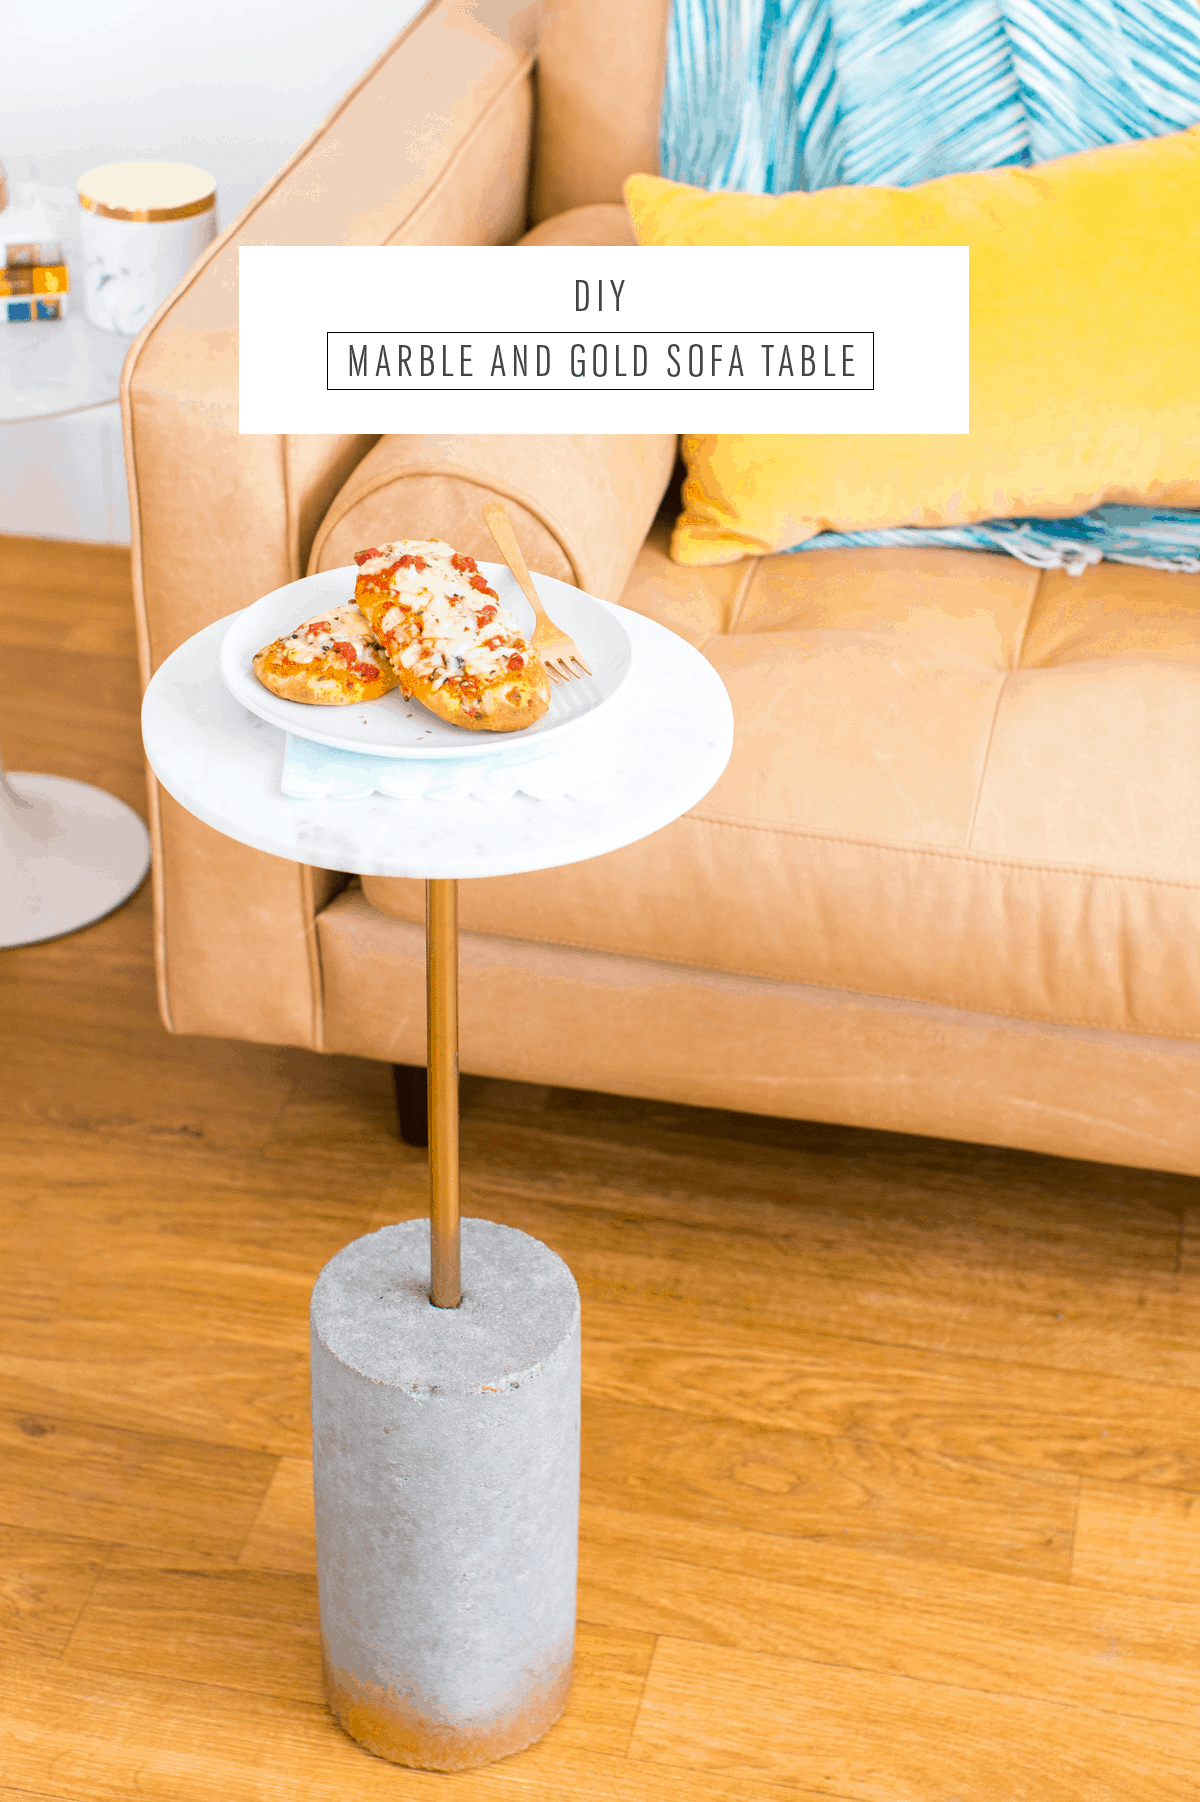 DIY marble and gold c table for tv dinners and snacking! - sugar and cloth - houston blogger - ashley rose #movienight #table #diytable #ctable #roundtable #marble #gold #homedecor